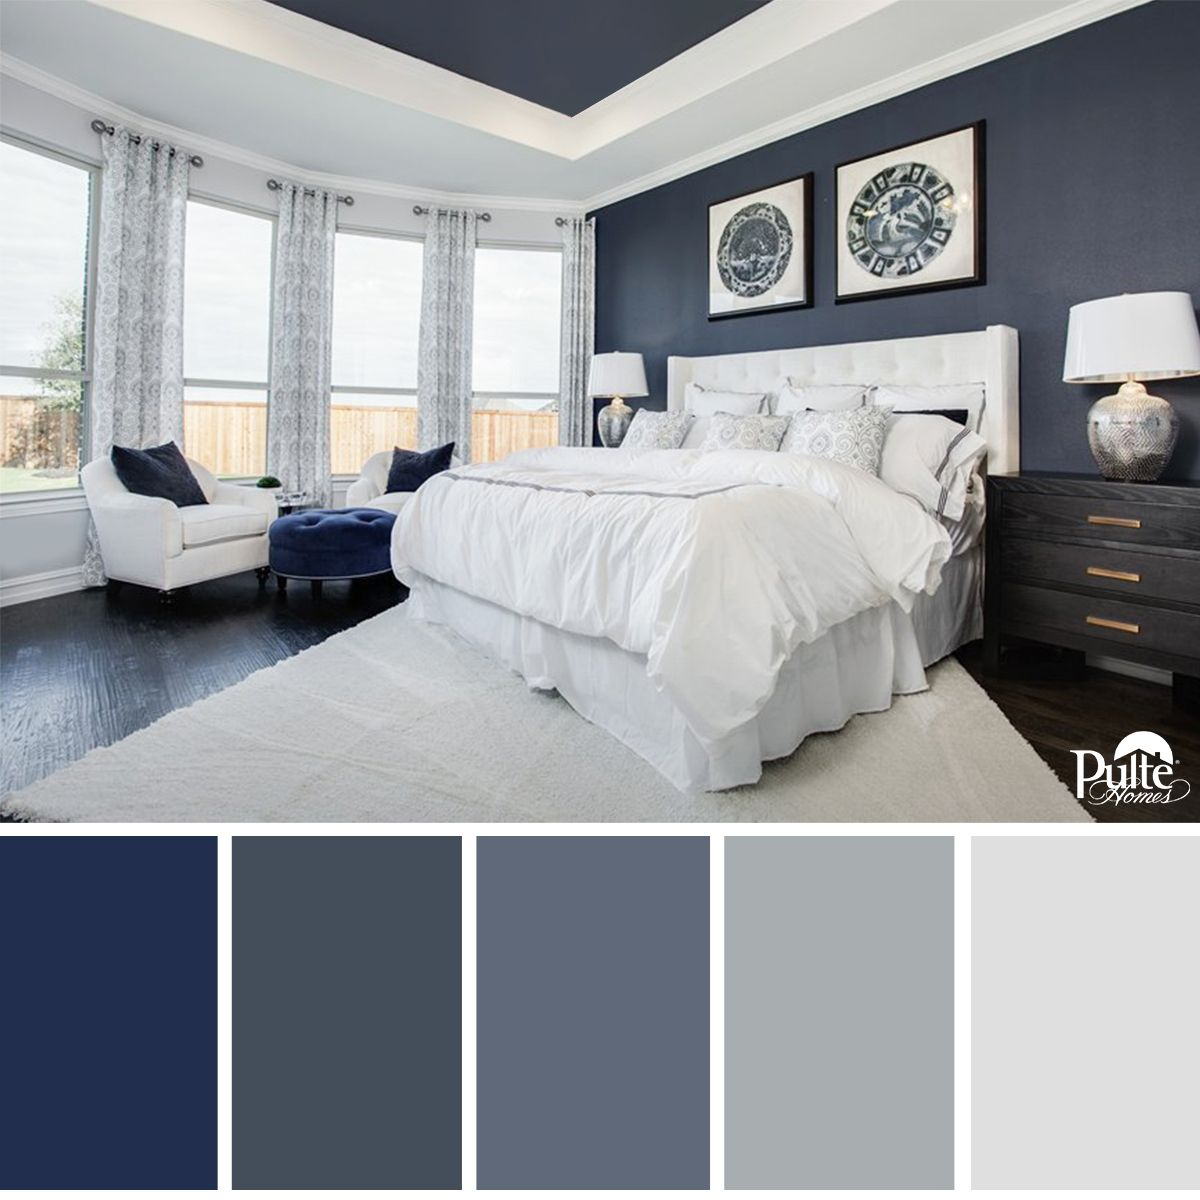 Bedroom color palette - This Bedroom Design Has The Right Idea The Rich Blue Color Palette And Decor Create